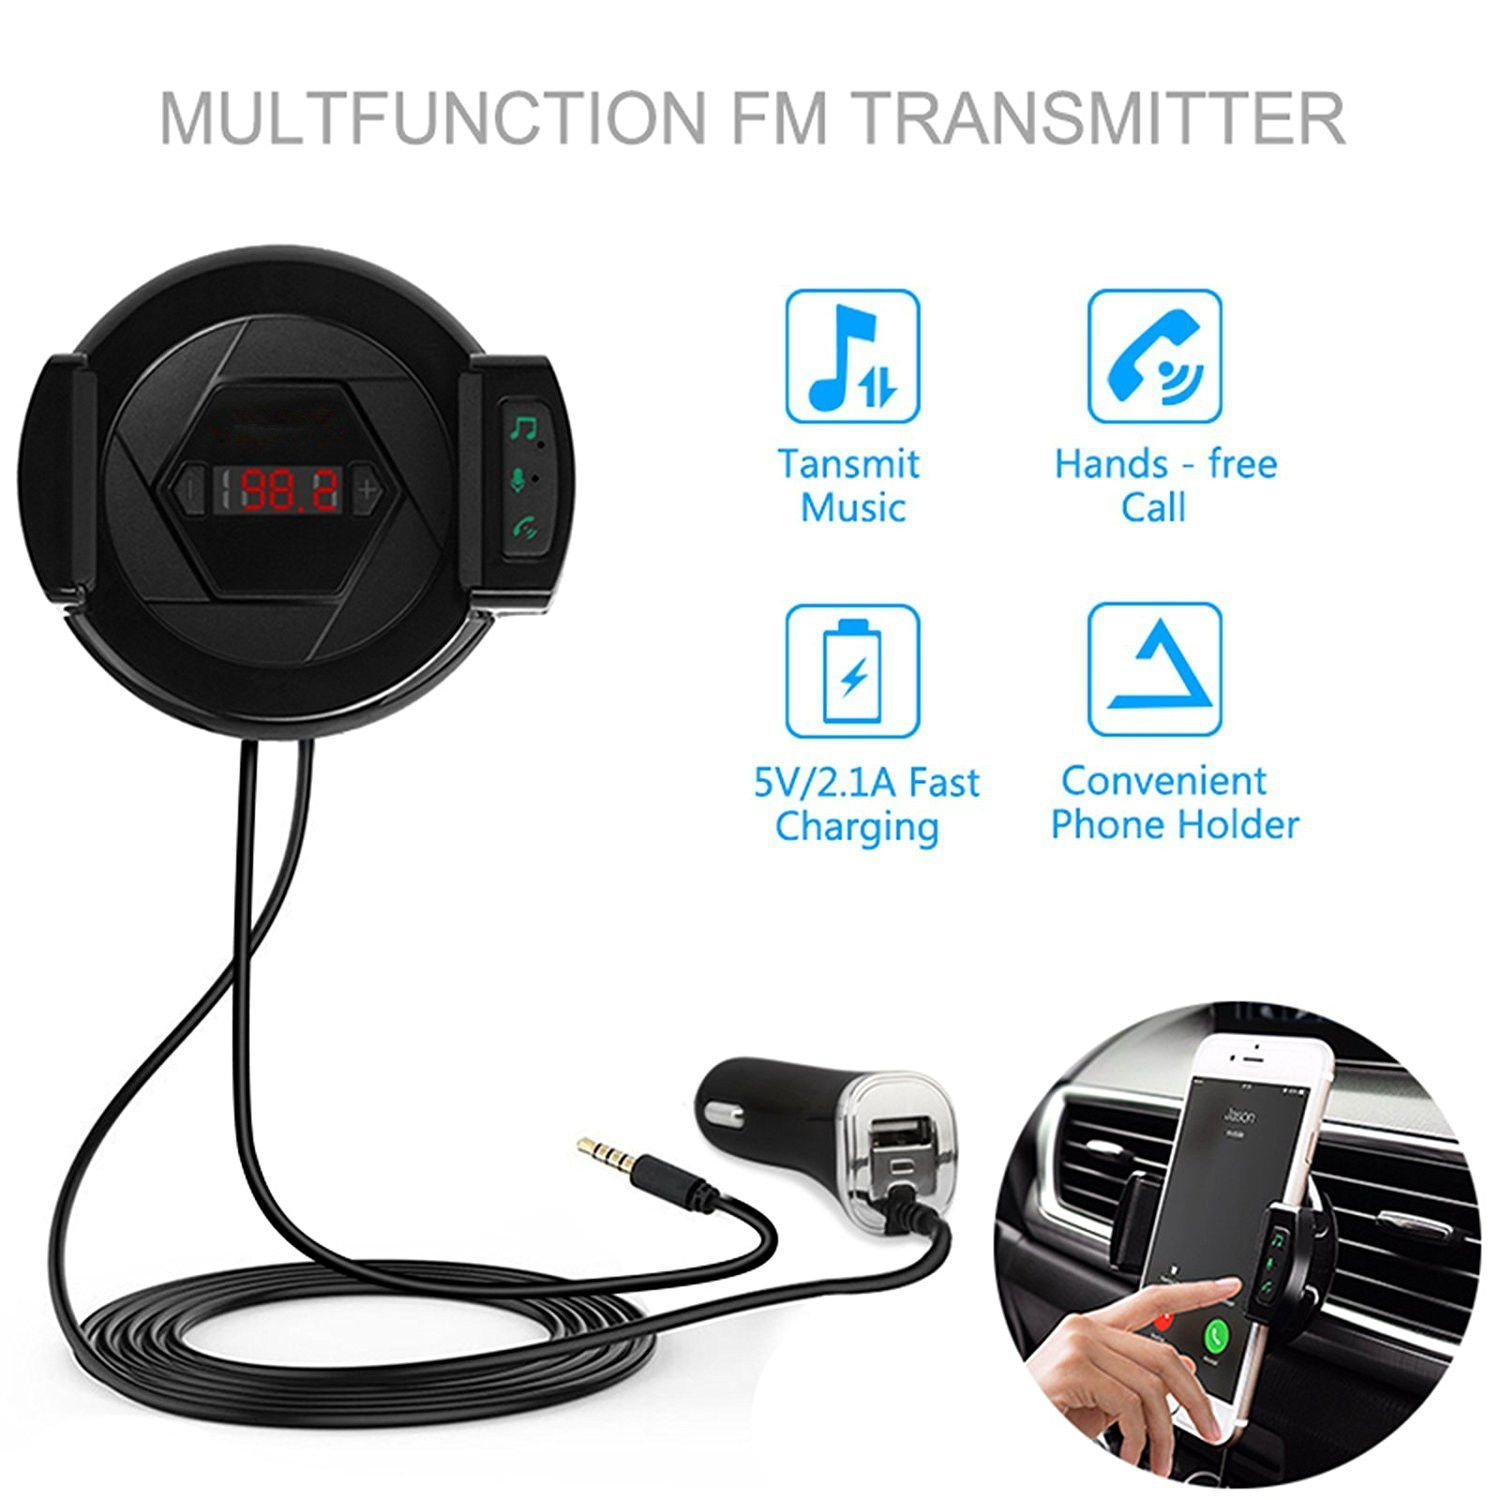 FM Transmitter ixaer Wireless Audio Receiver Stereo, Car Kit With USB Fast Car Charger, Microphone Hands-free Phone Charger Three-in-one for iPhone, Android and MP3 etc.